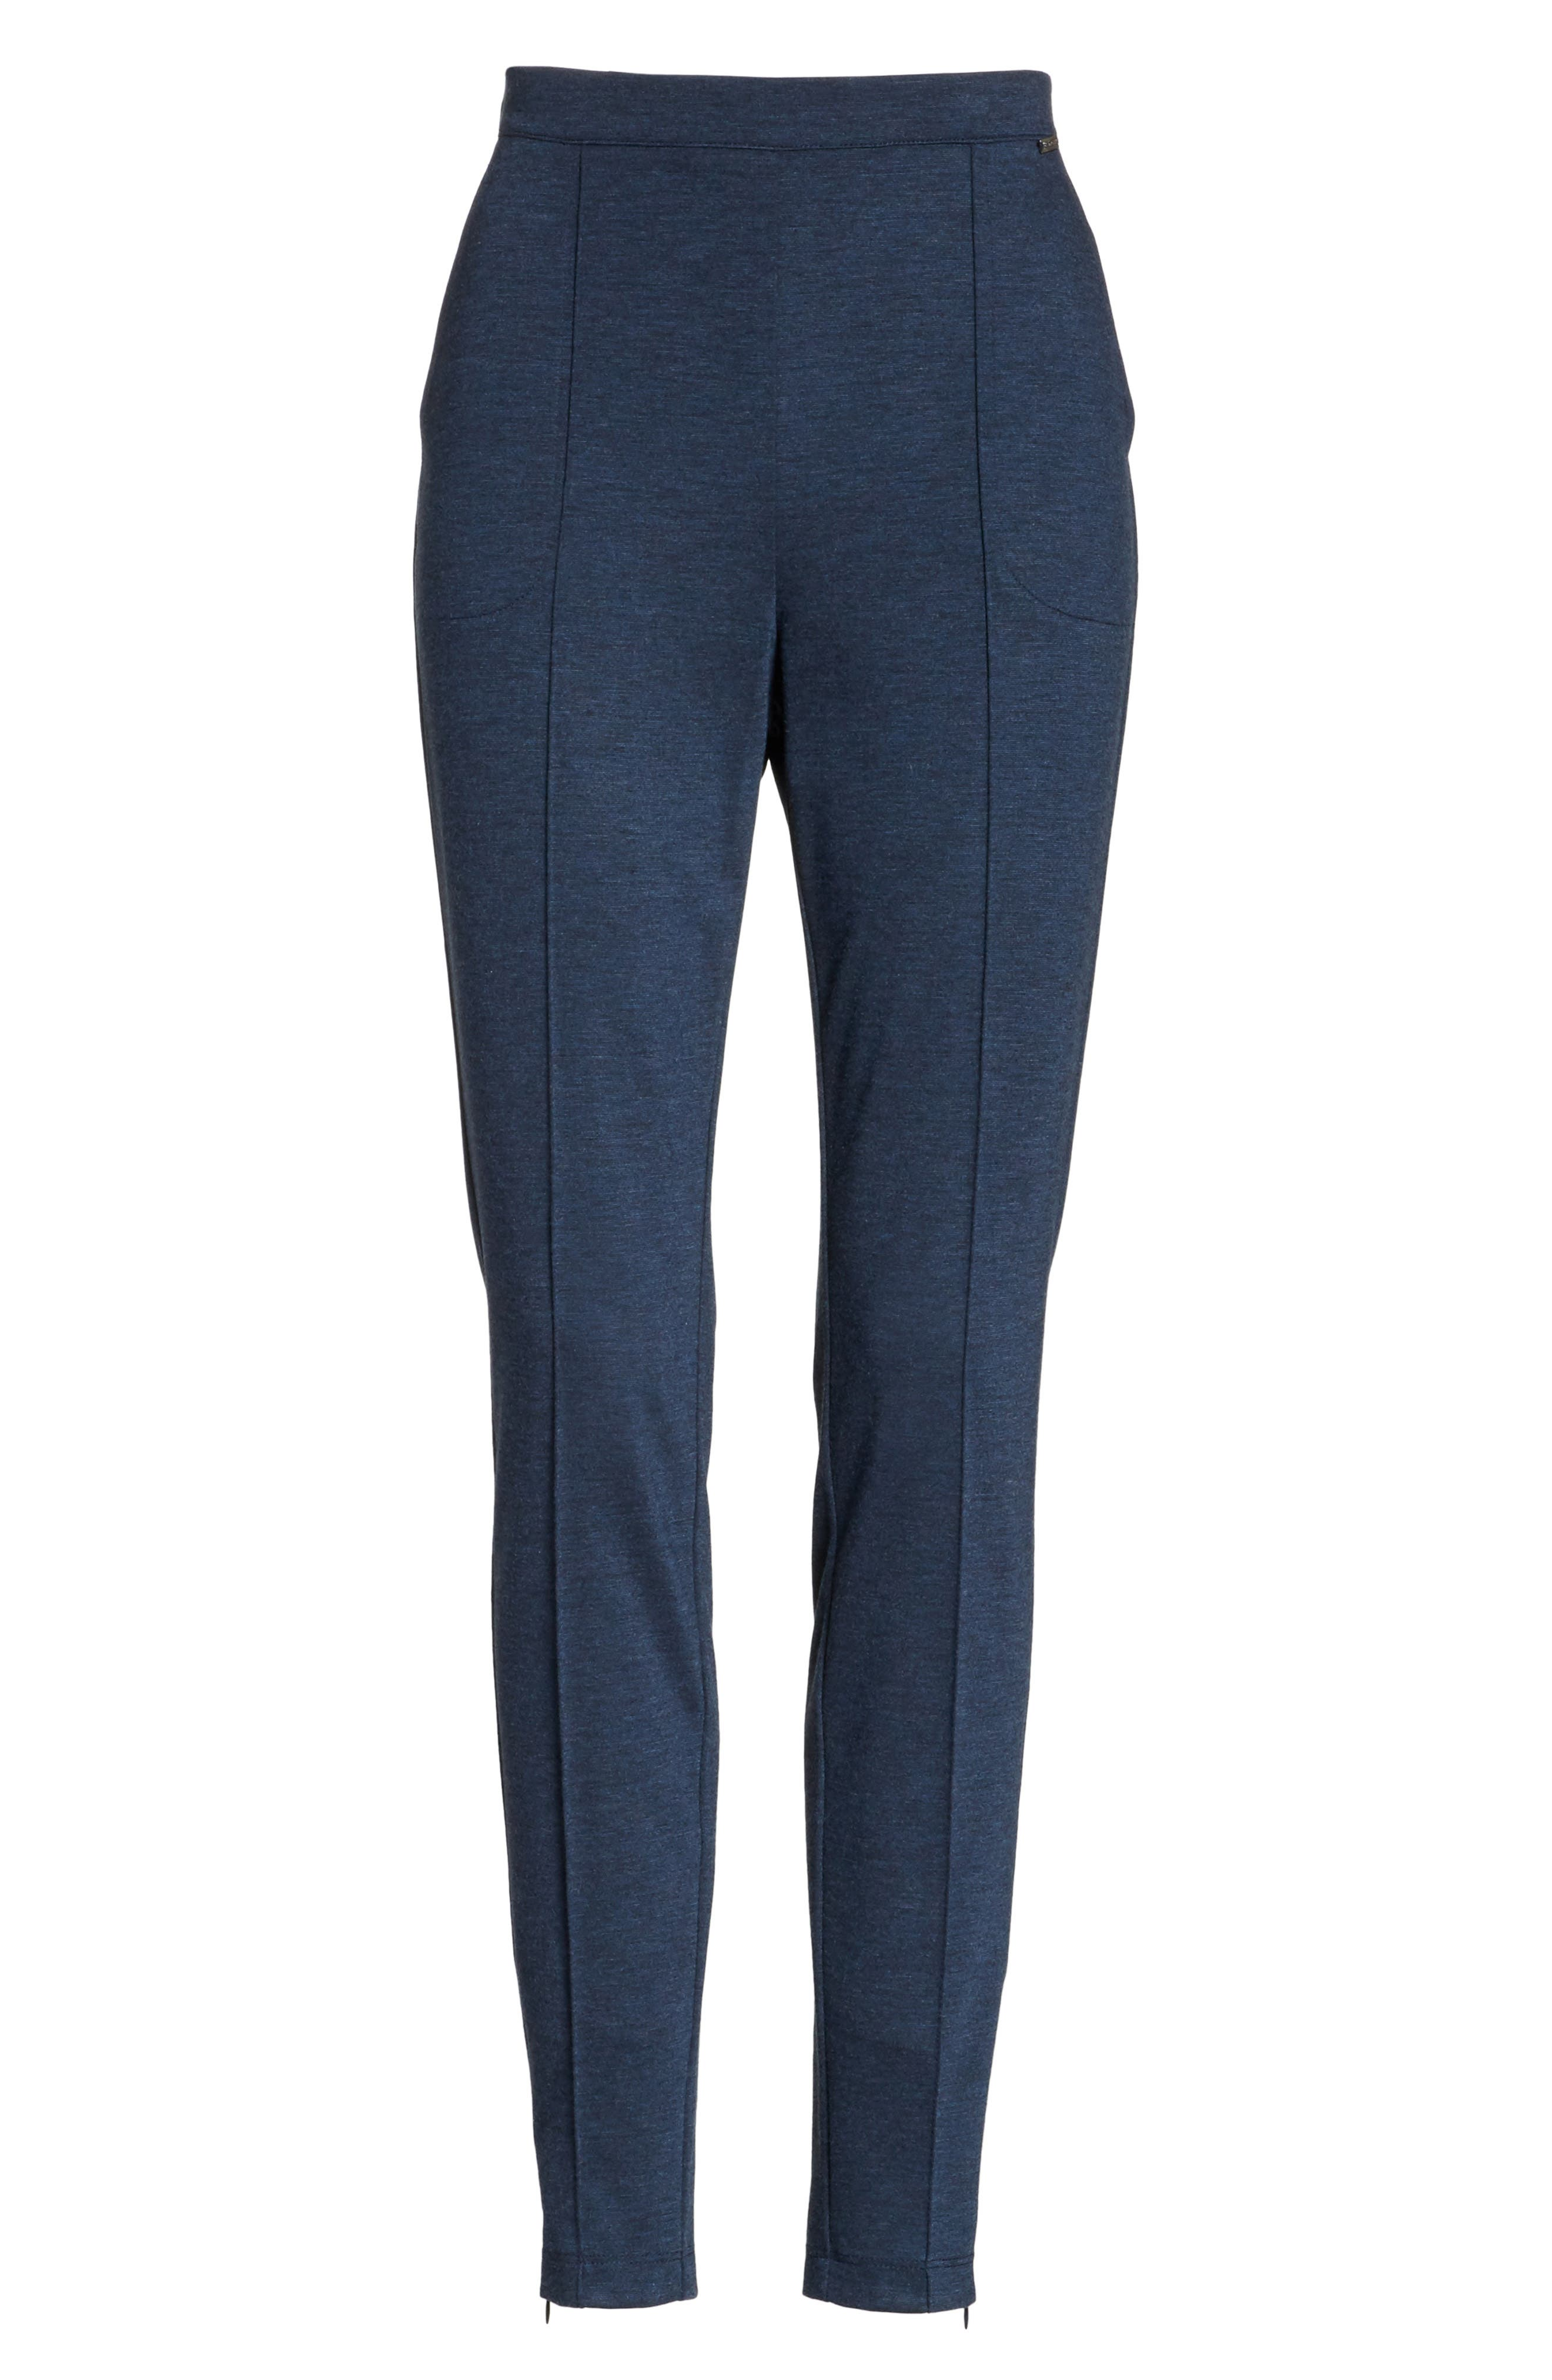 Mélange Stretch Ponte Crop Pants,                             Alternate thumbnail 13, color,                             Dark Blue